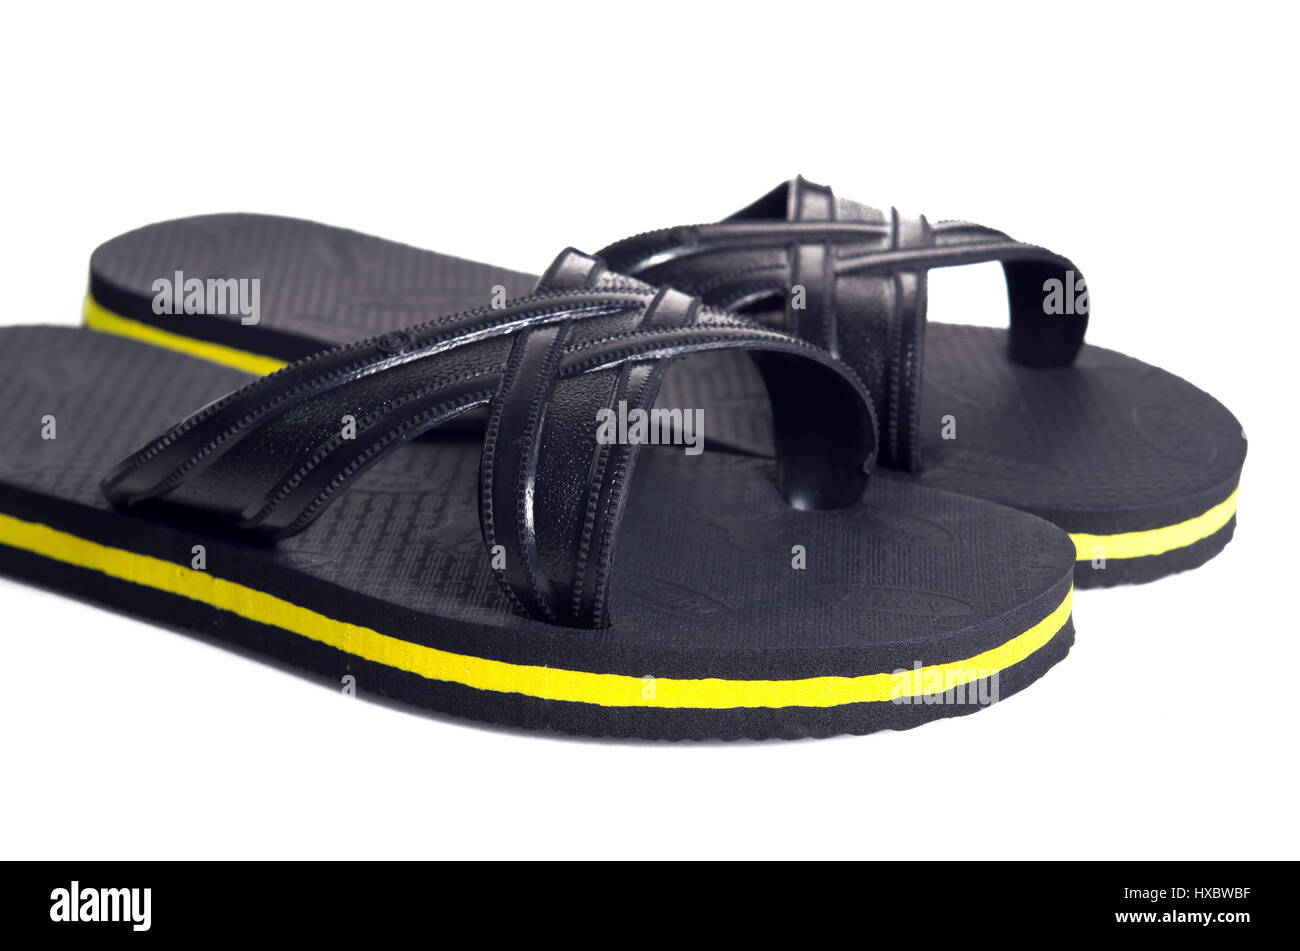 2e99885c135 Rubber embed with plastic sandal or slipper with black and yellow stripes  isolated on white (Property release of visible logo trademark is attached)